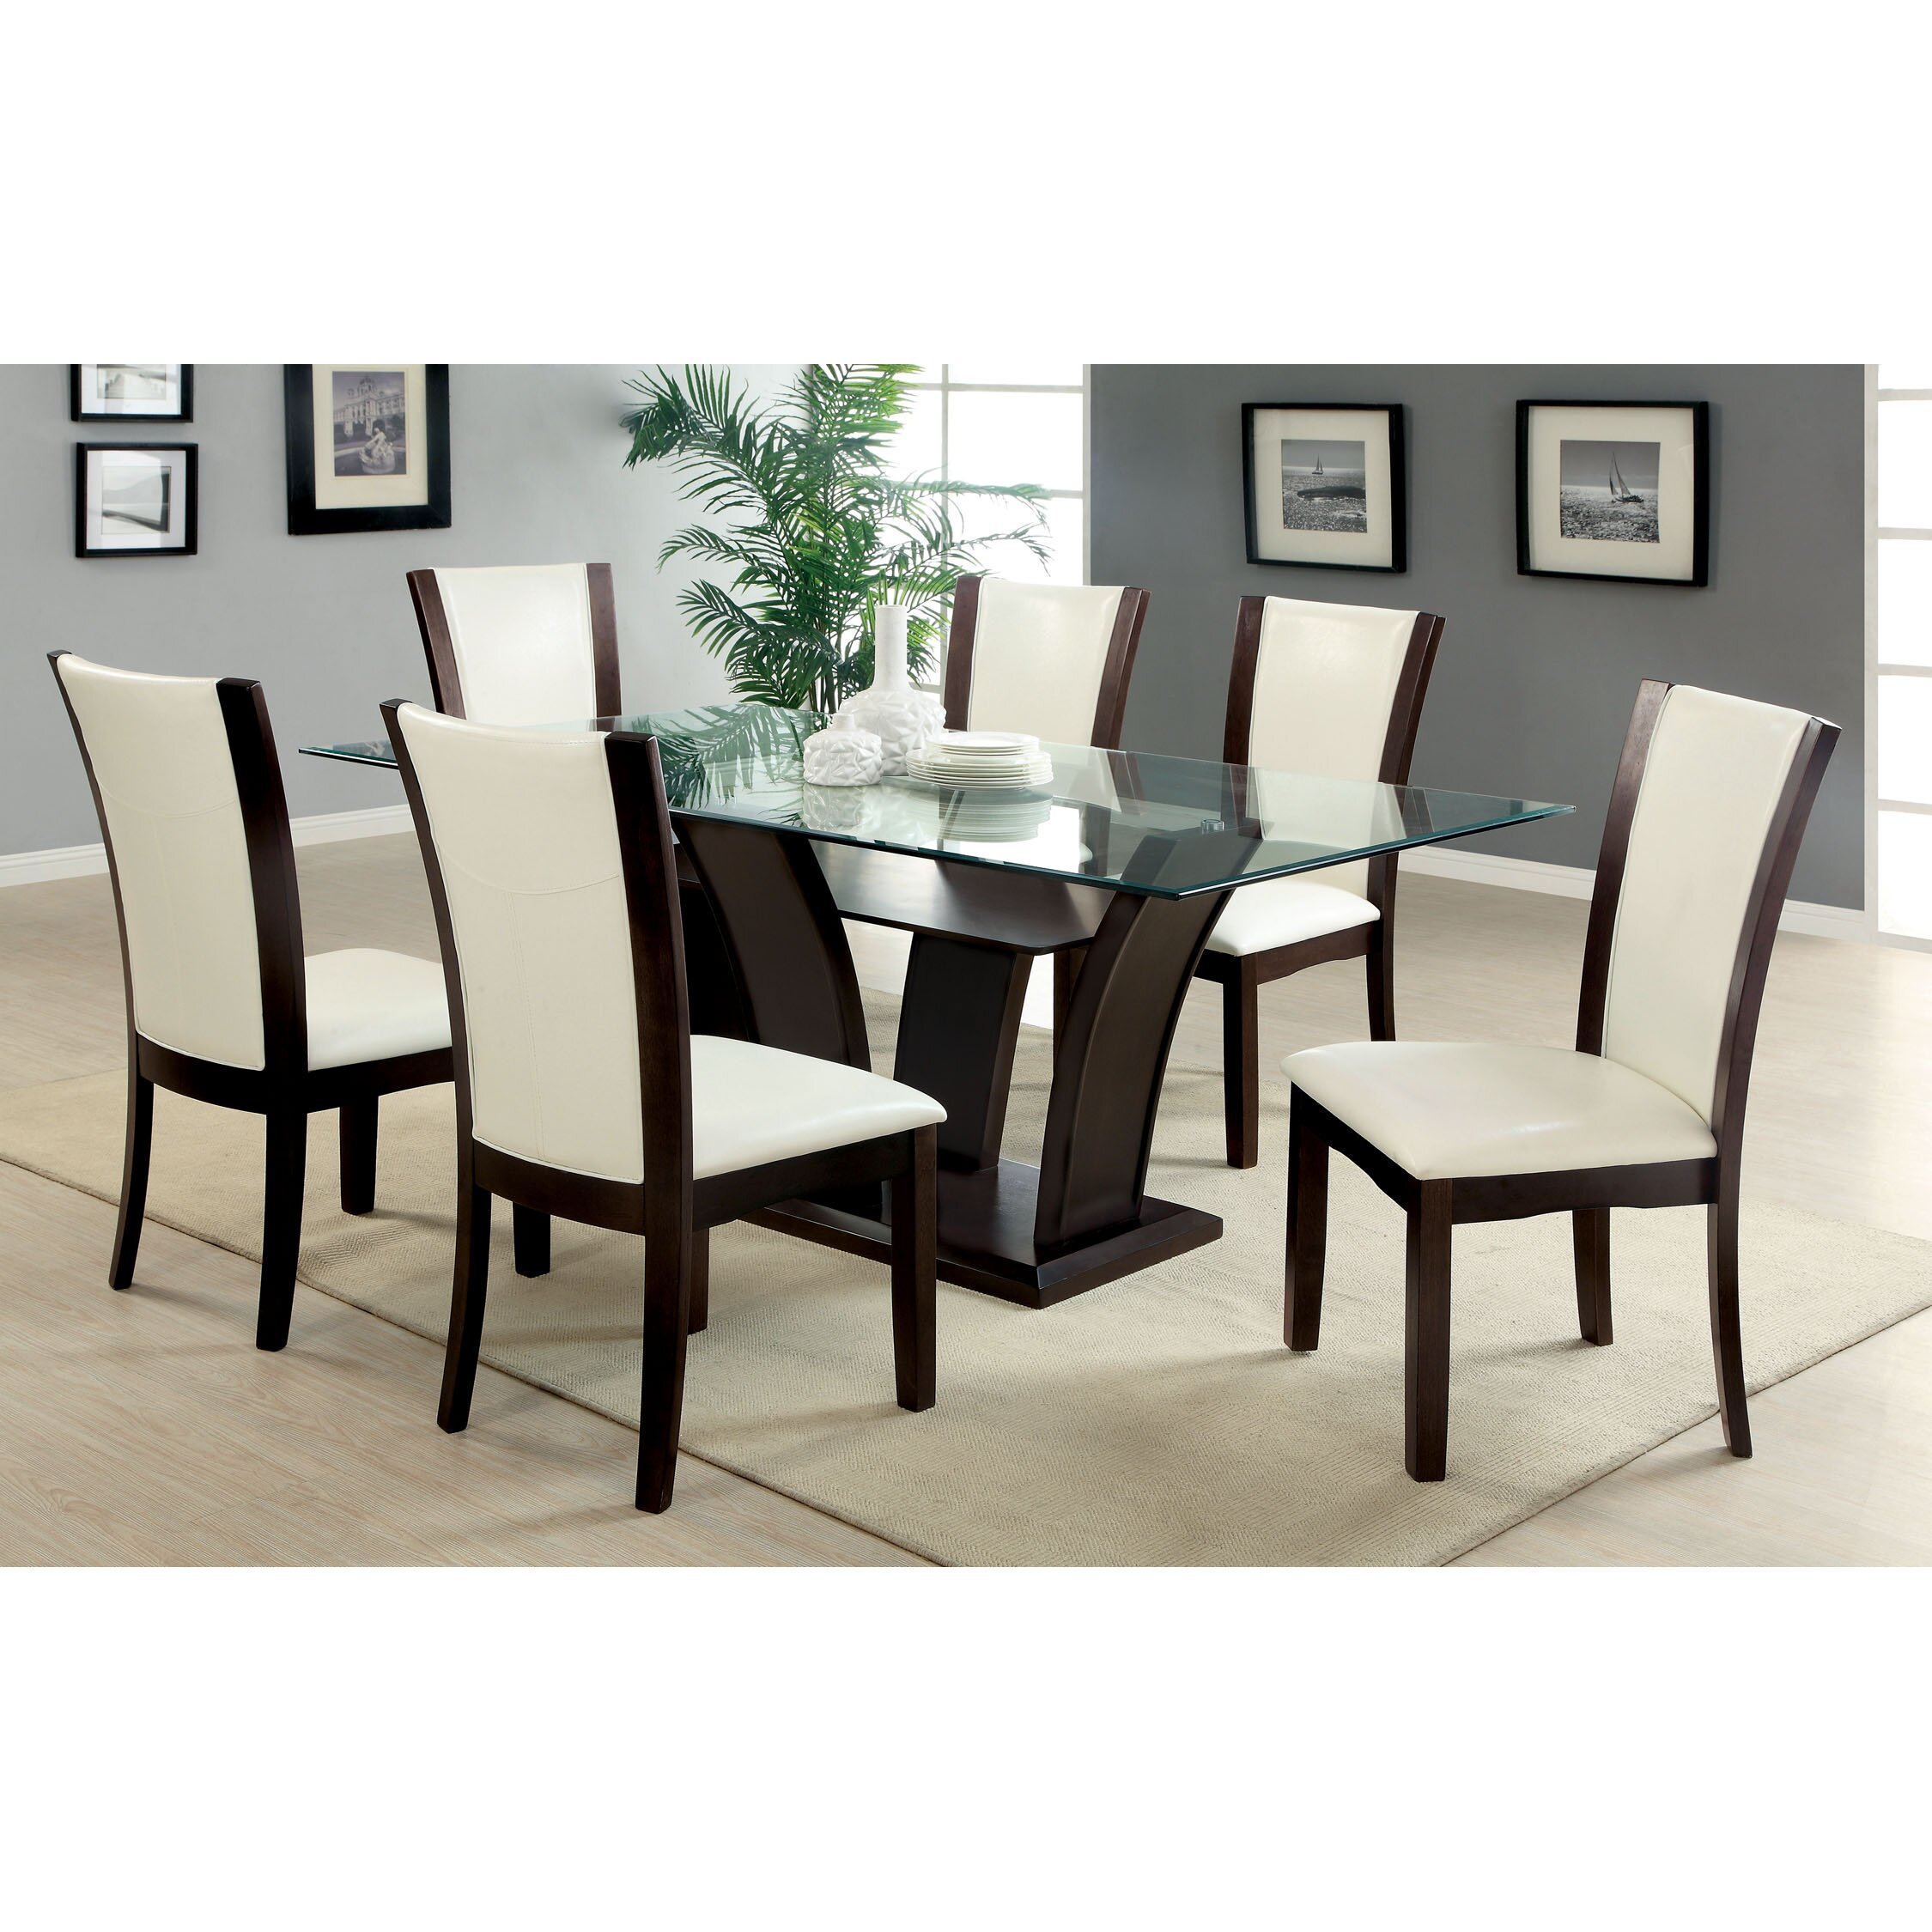 Hokku designs carmilla 7 piece dining set reviews wayfair for Breakfast room sets